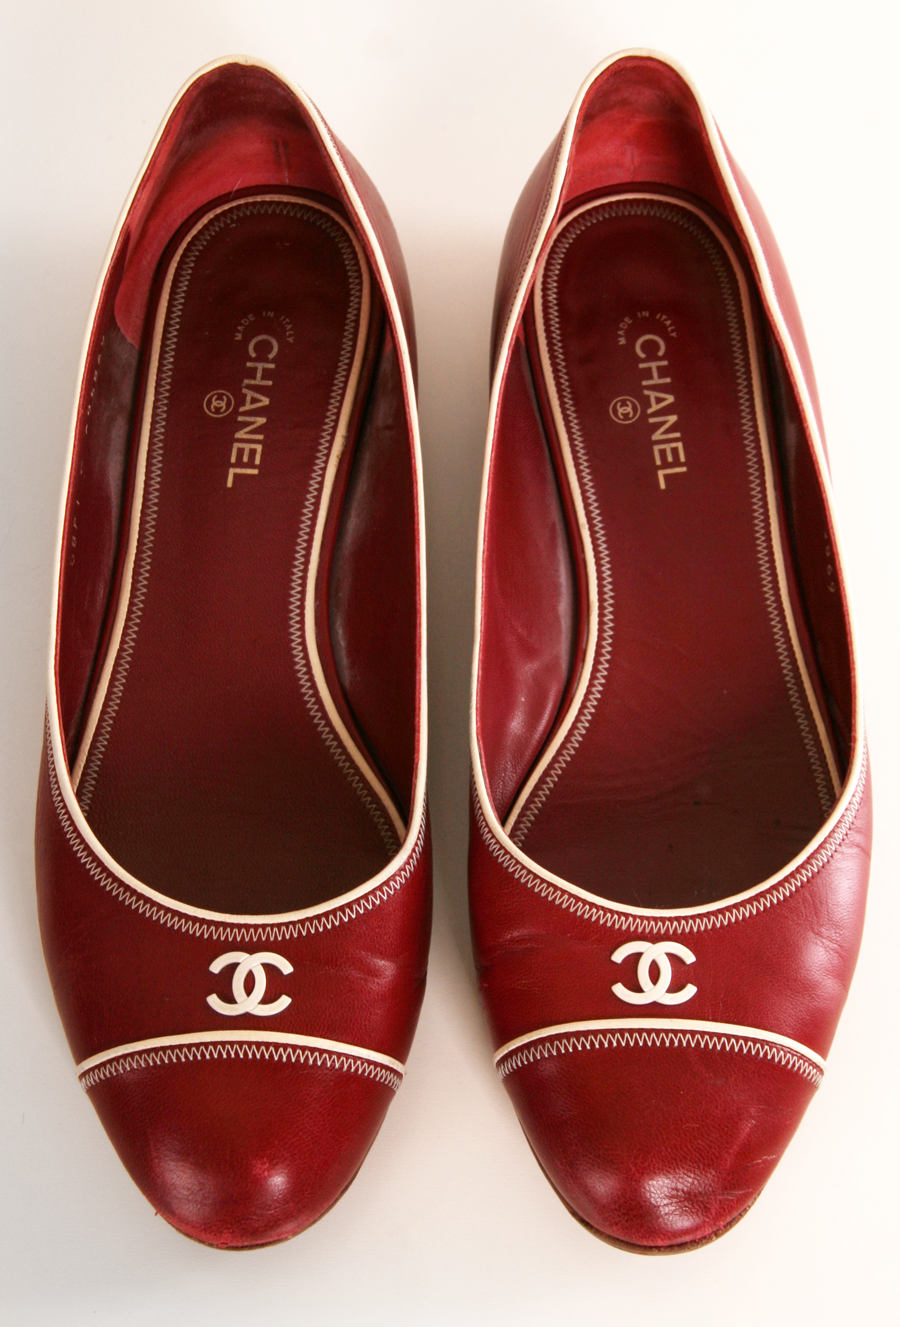 359d2cc4e9f CHANEL FLATS @Shop-Hers | matd in 2019 | Chanel flats, Shoes, Chanel ...